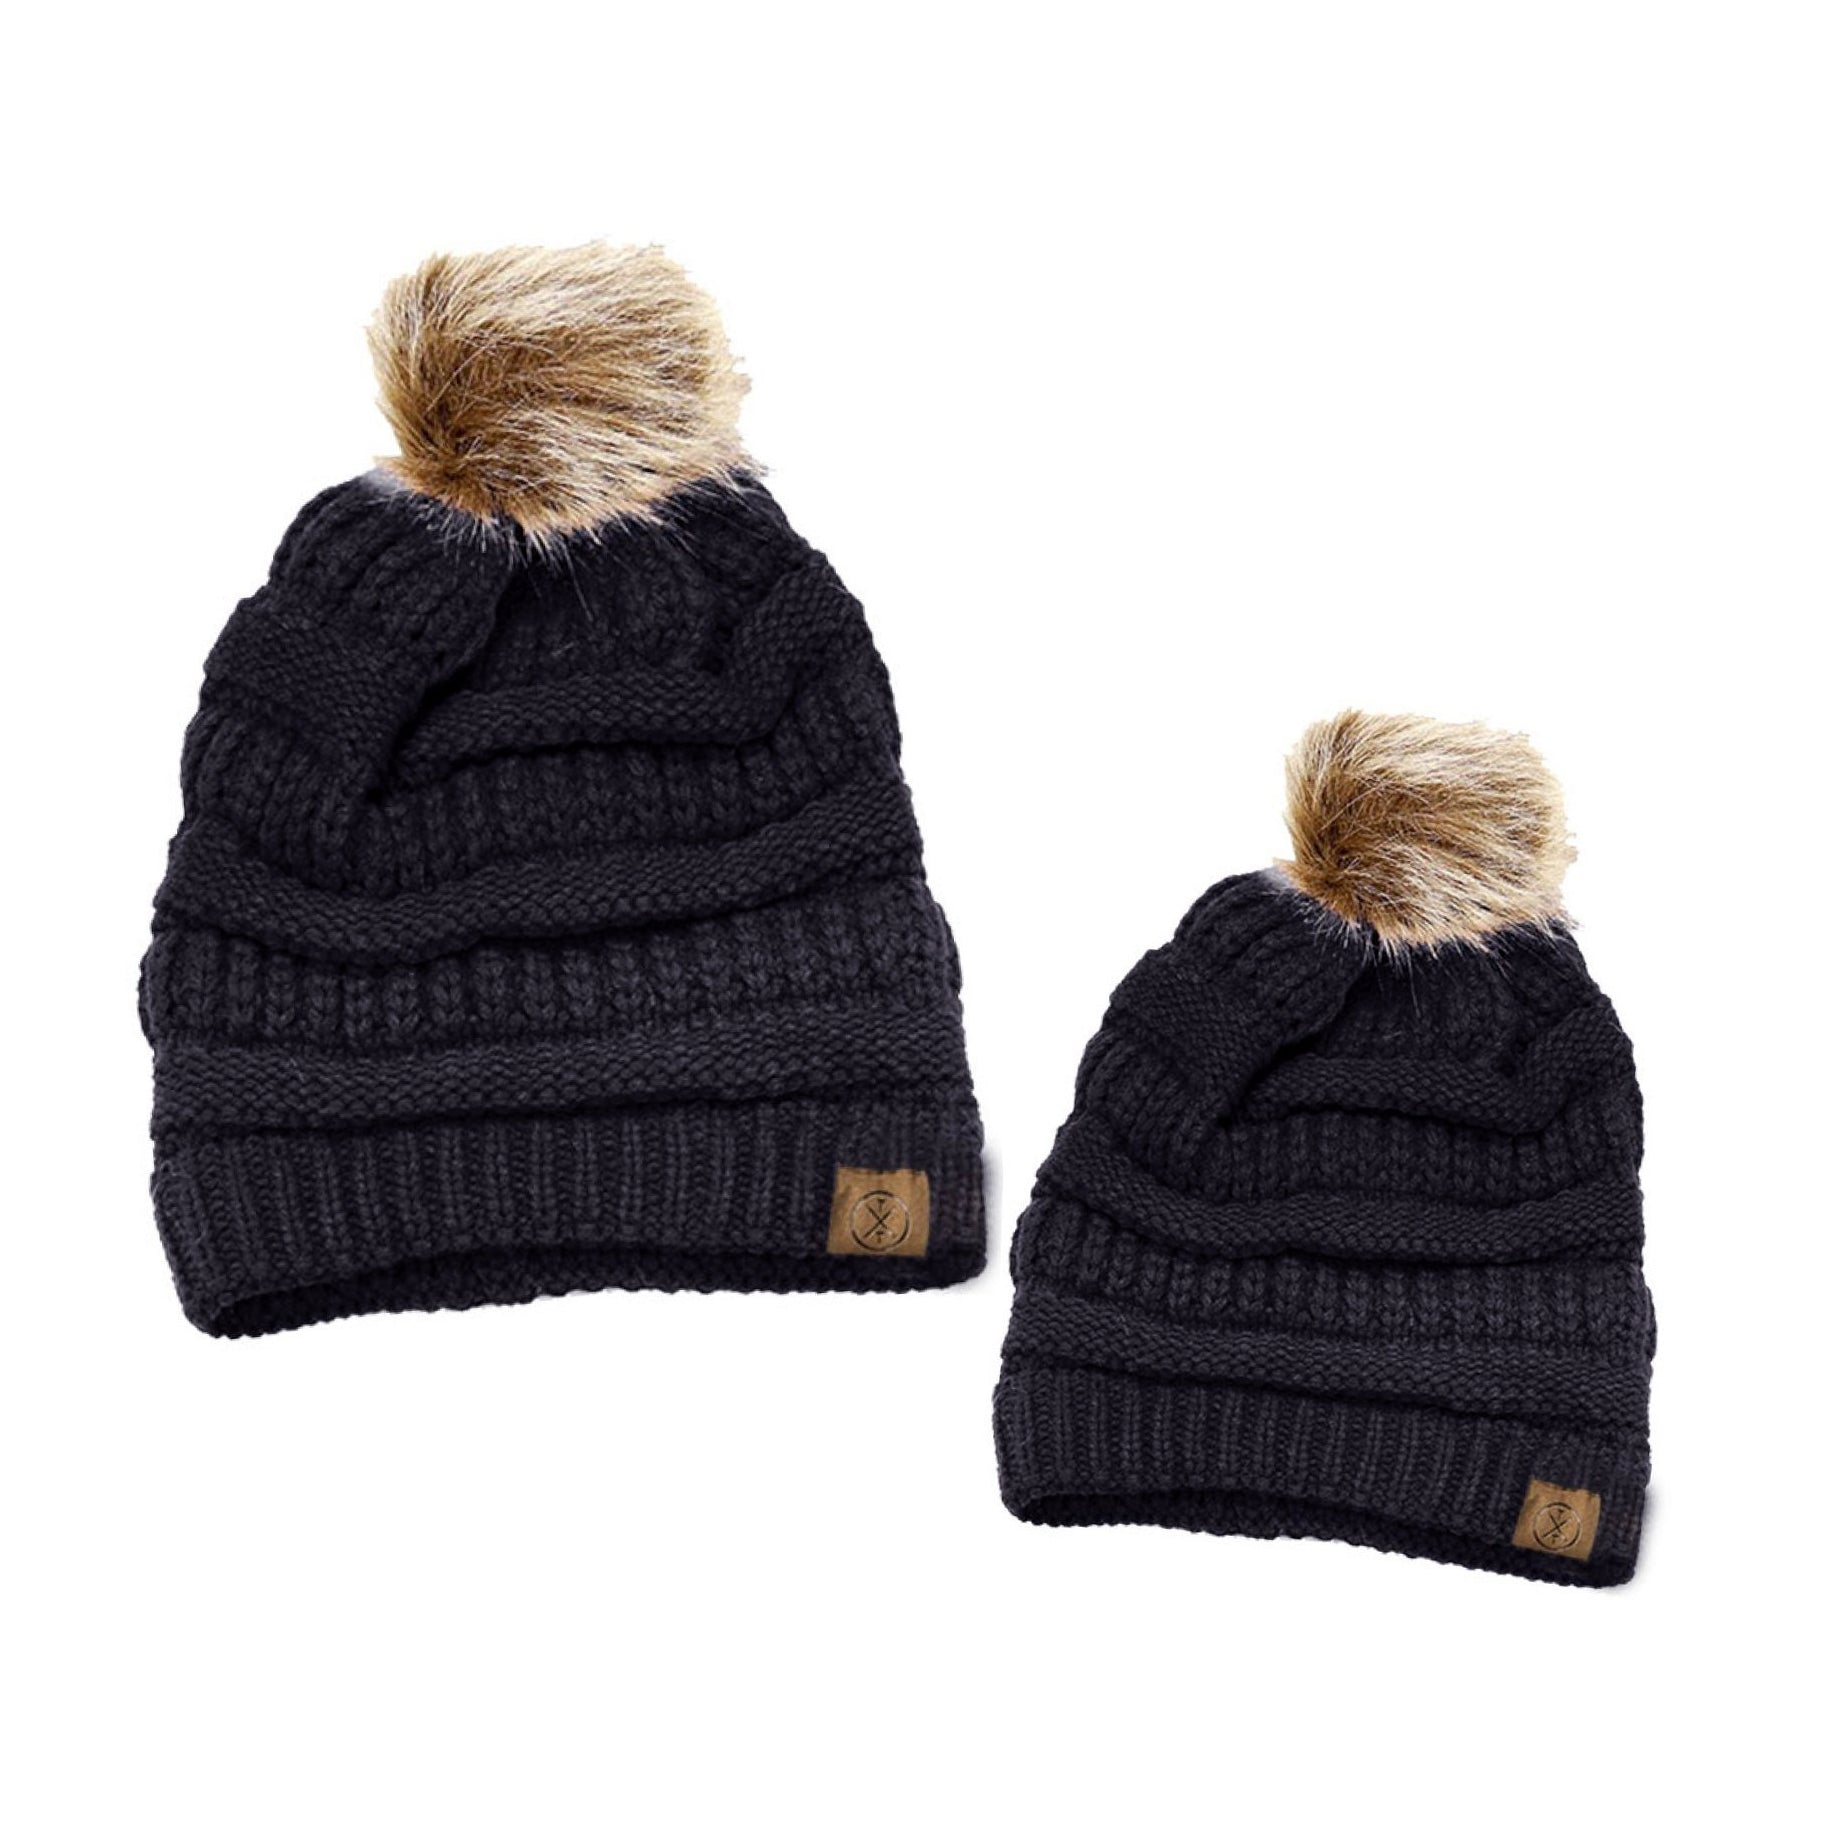 Tiny Trucker Co. Black Ivory Knit Faux Fur Pom Beanie Hat Set Mom Baby Toddler Tadpoles & Tiddlers Cleveland Bath Akron Ohio